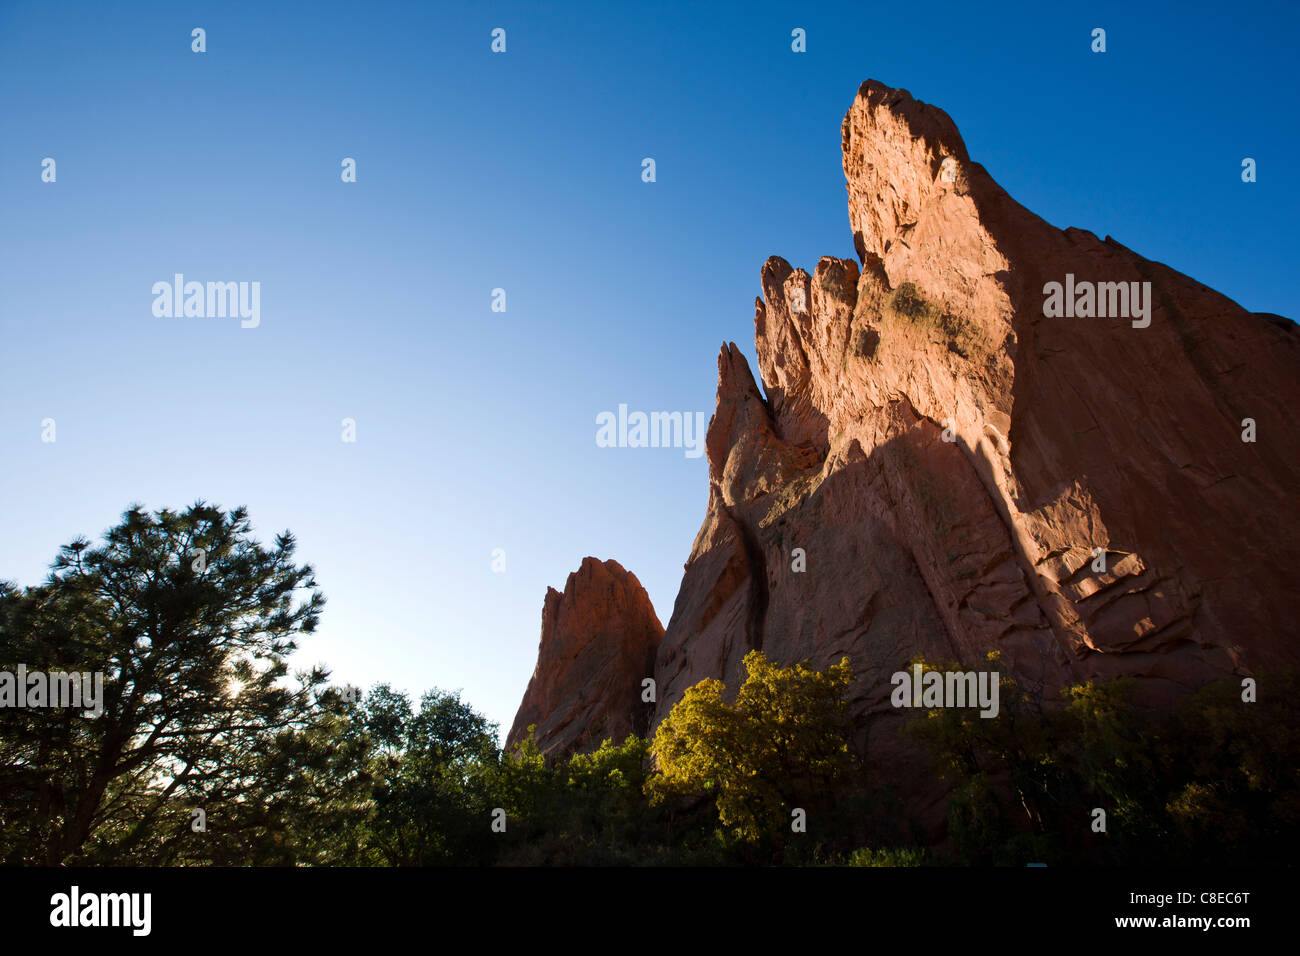 South Gateway Rock, Garden of the Gods. National Natural Landmark, Colorado - Stock Image